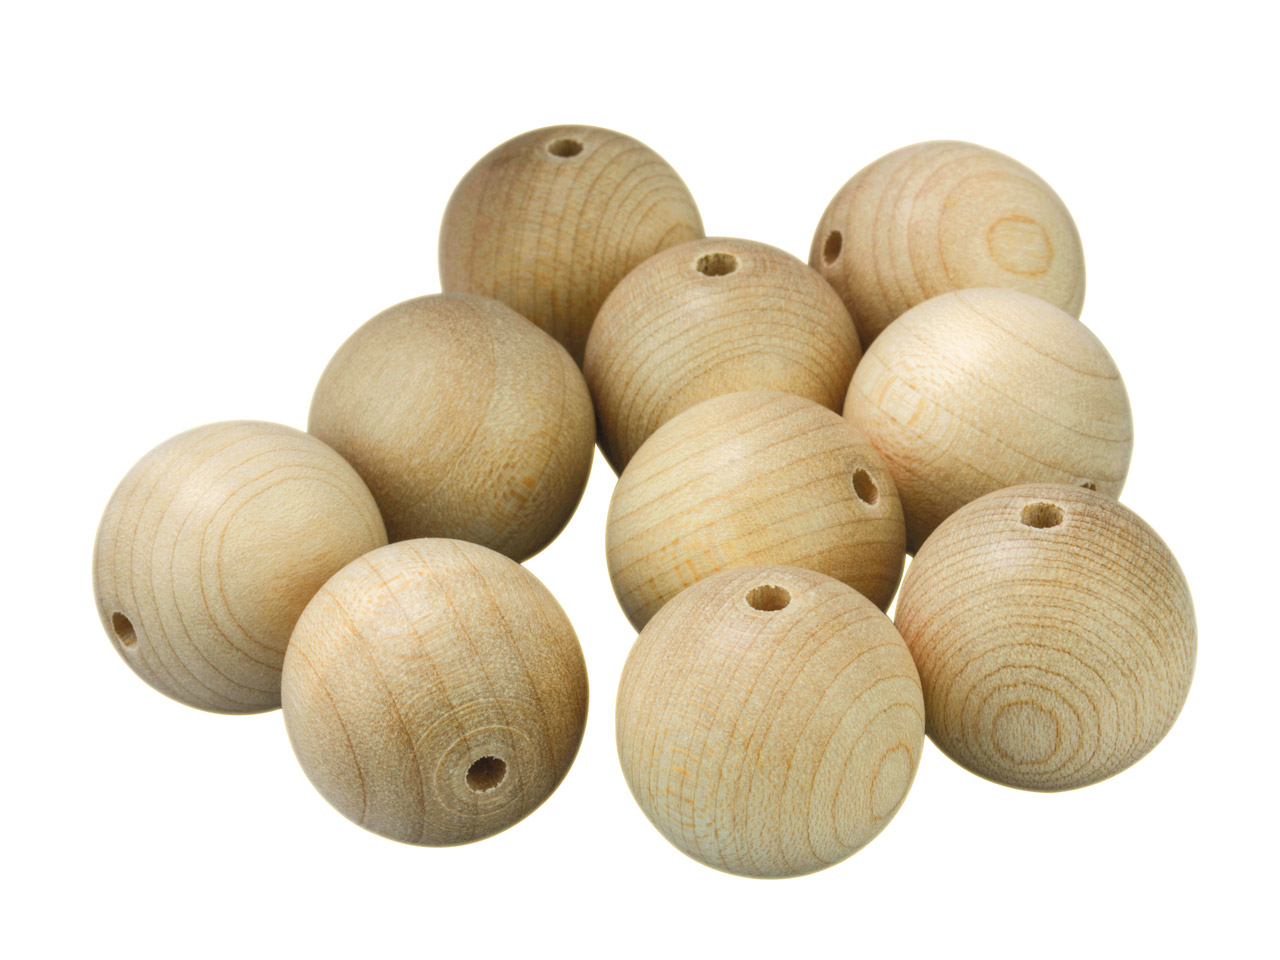 Preciosa Wooden Craft Beads, 25mm, Pack of 10